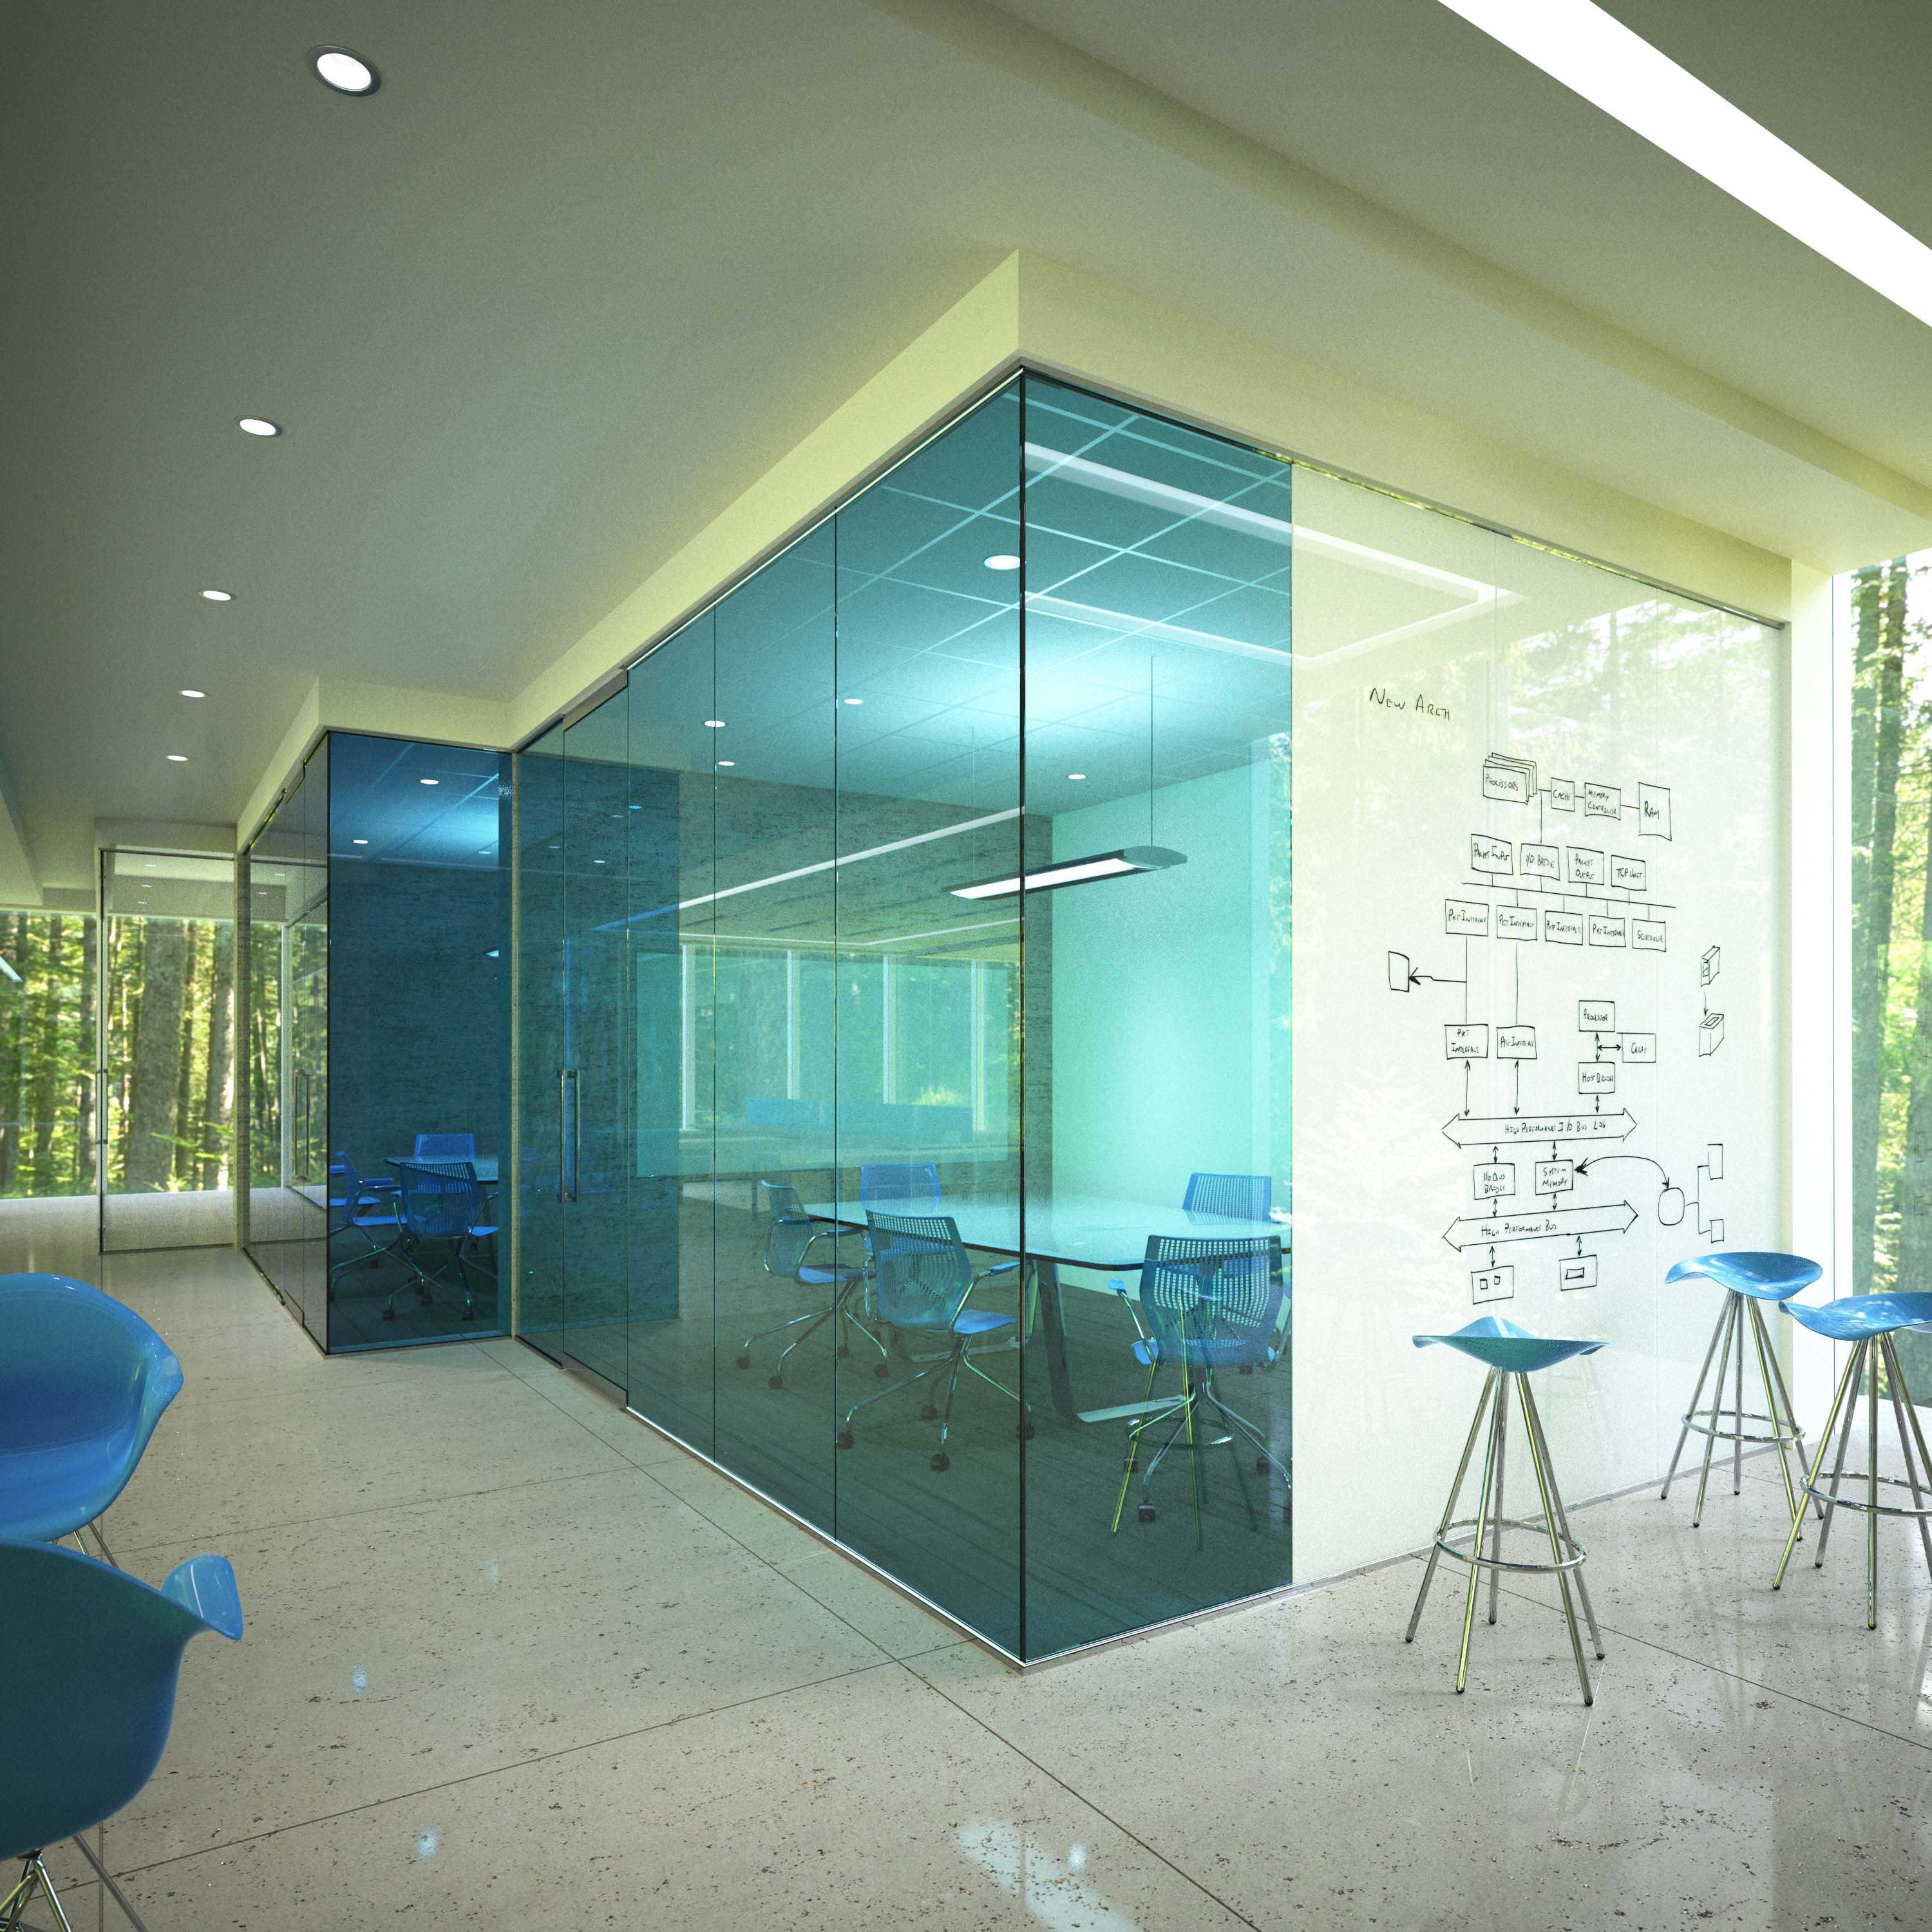 gallery office glass. Gallery - Glass Whiteboards And Dry Erase Boards By Clarus Option 1 For Freestanding Interior Office Walls Like In Image One But A Light Blue